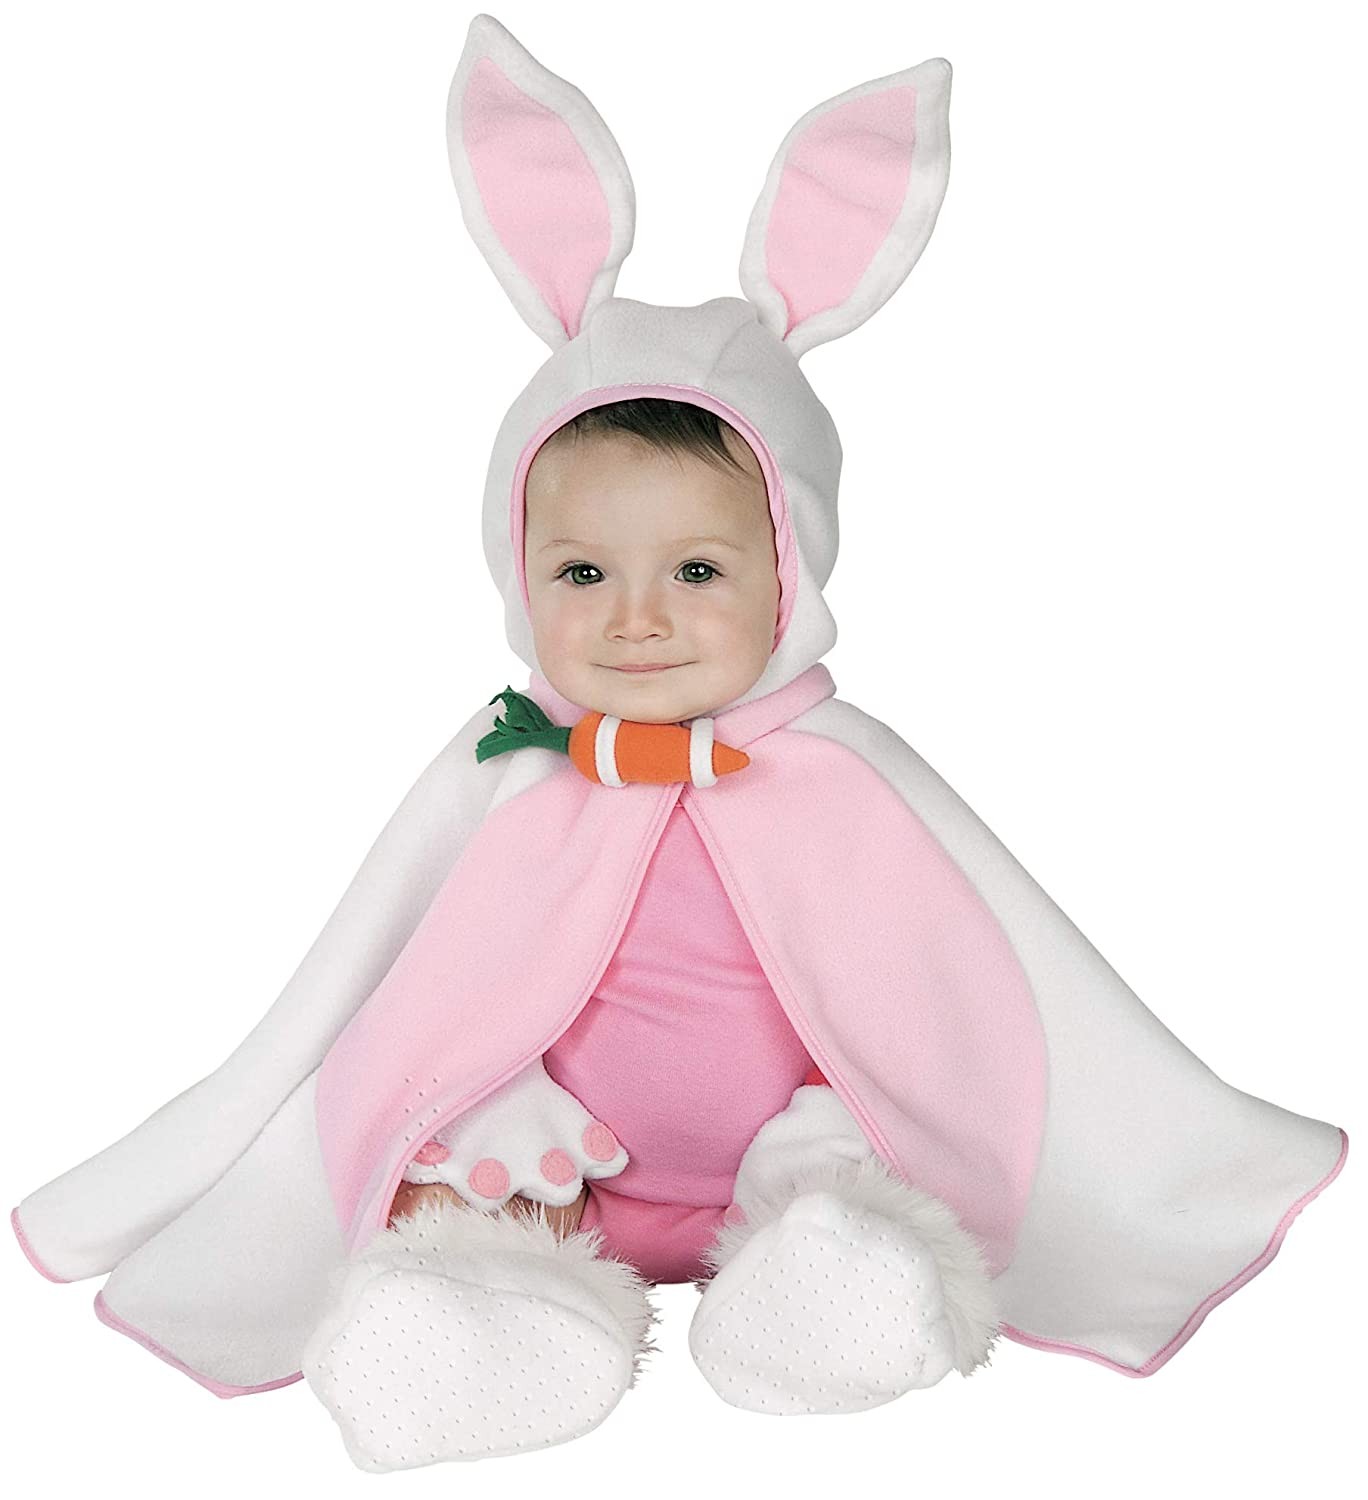 Rubies Costume Co Baby Girls Caped Cutie Lil Bunny Costume